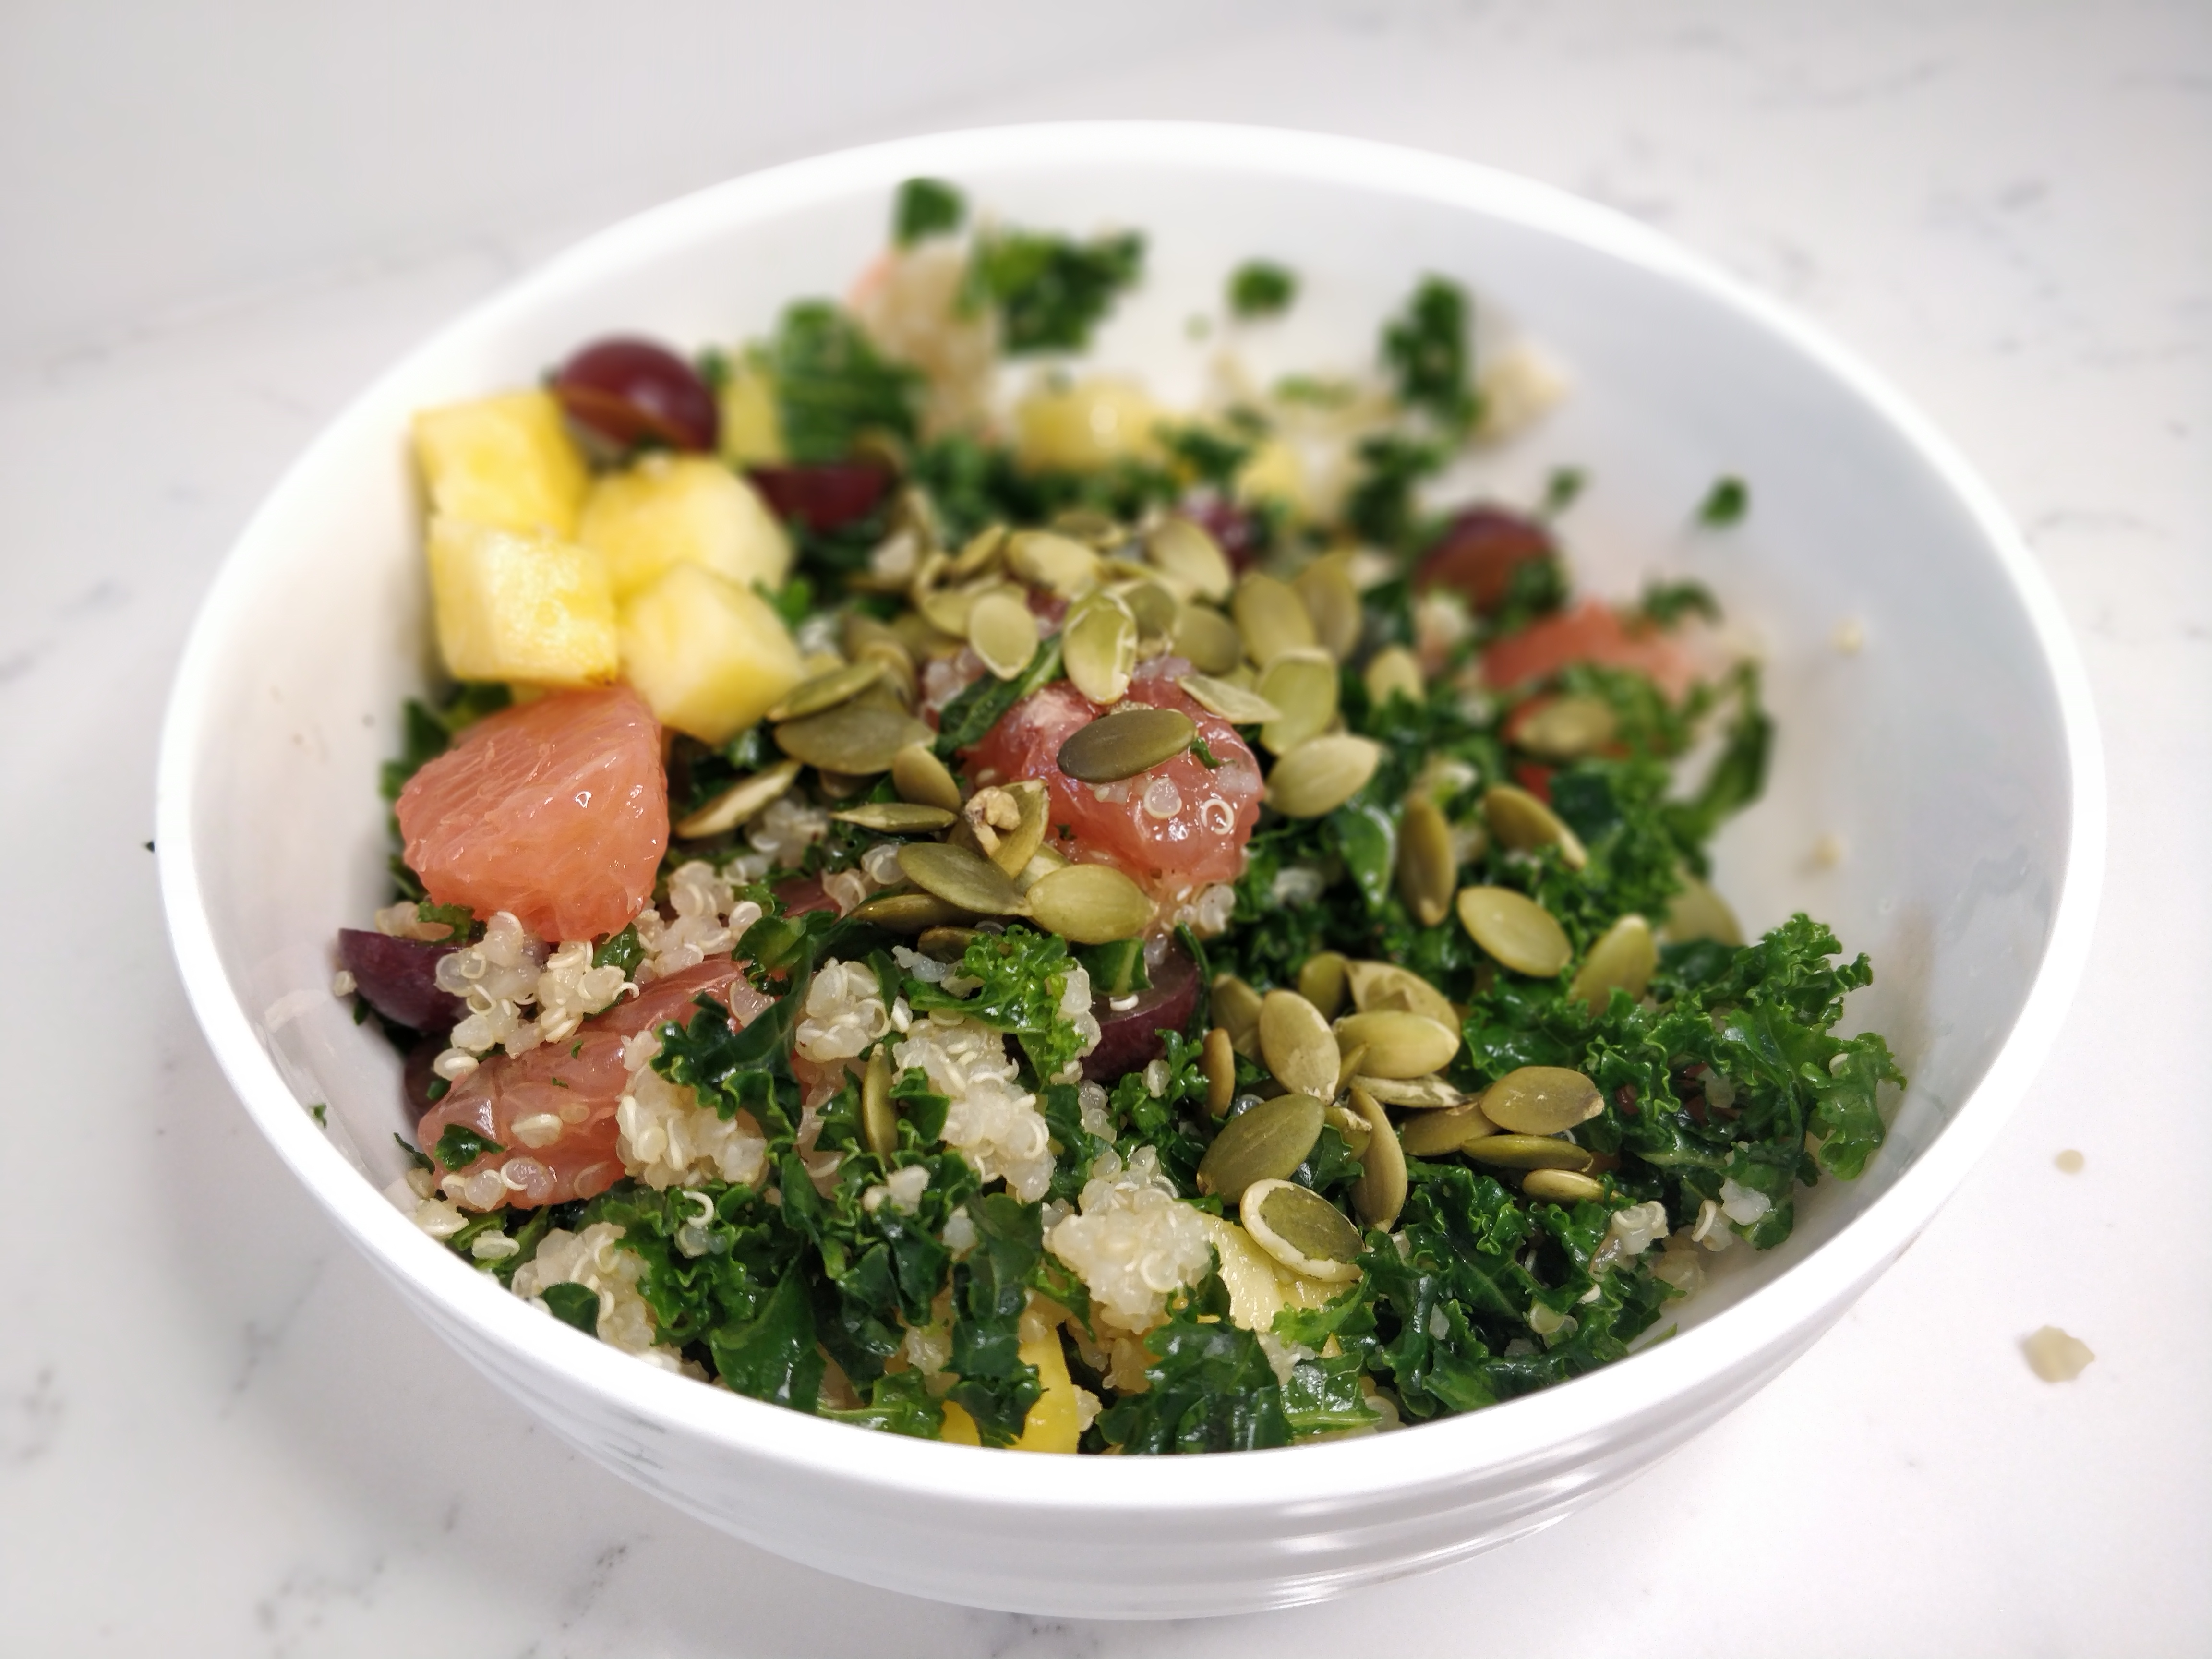 Tropical Kale and Quinoa Salad